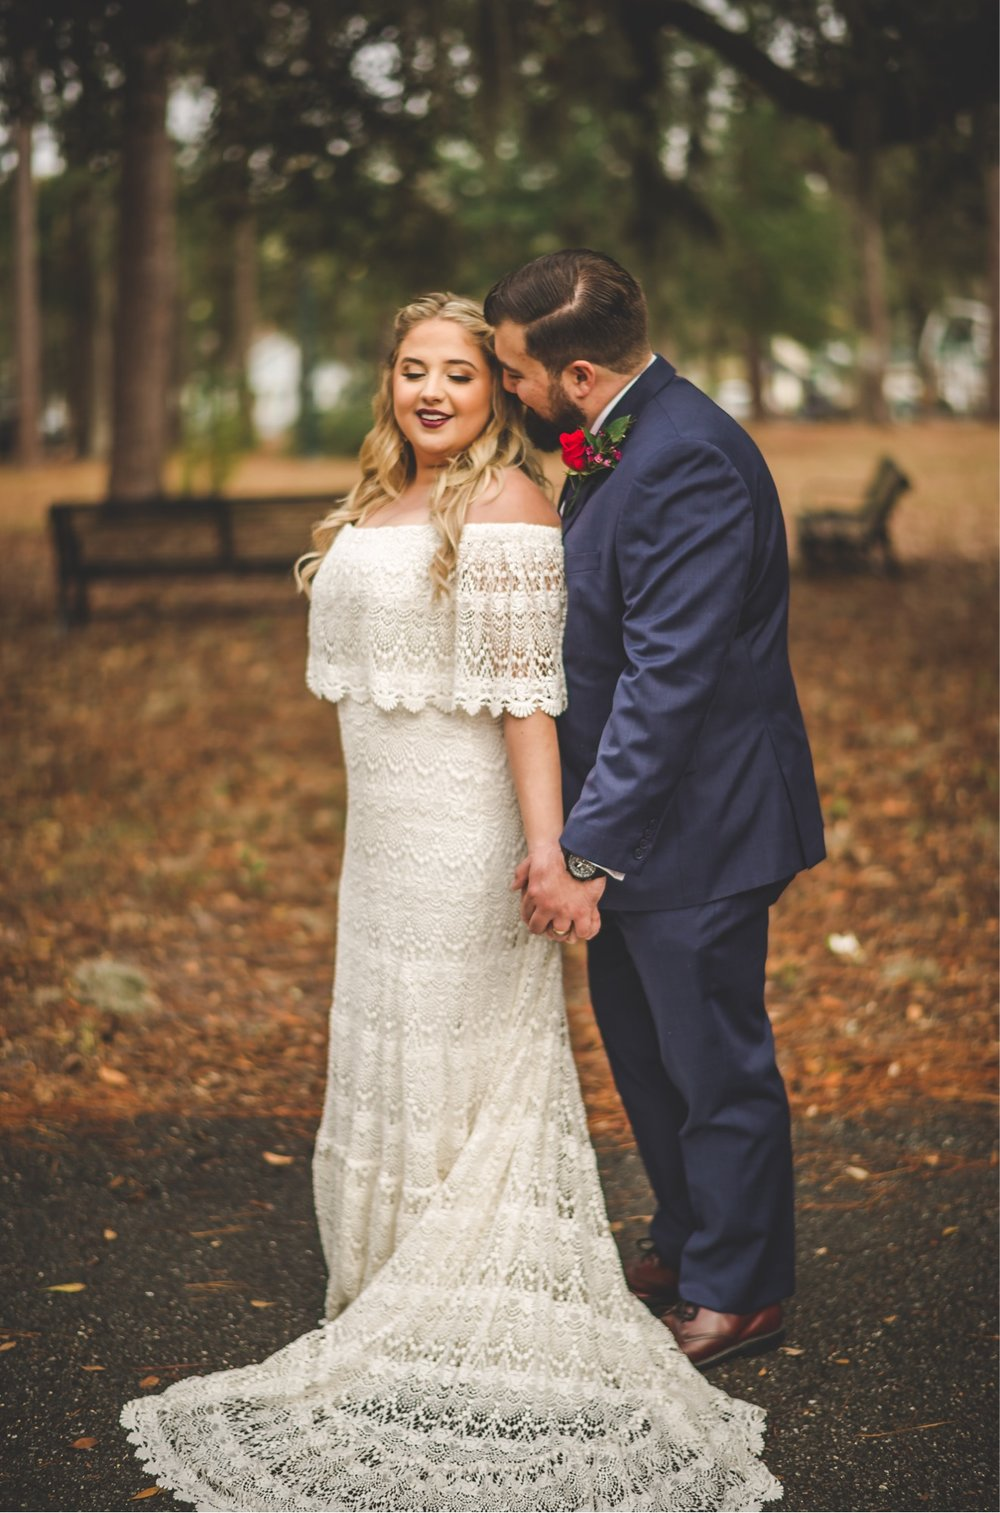 ivory-and-beau-bridal-boutique-savannah-wedding-gown-camille-daughters-of-simone-tyler-mckenzie-photography-boho-bride-1.JPG